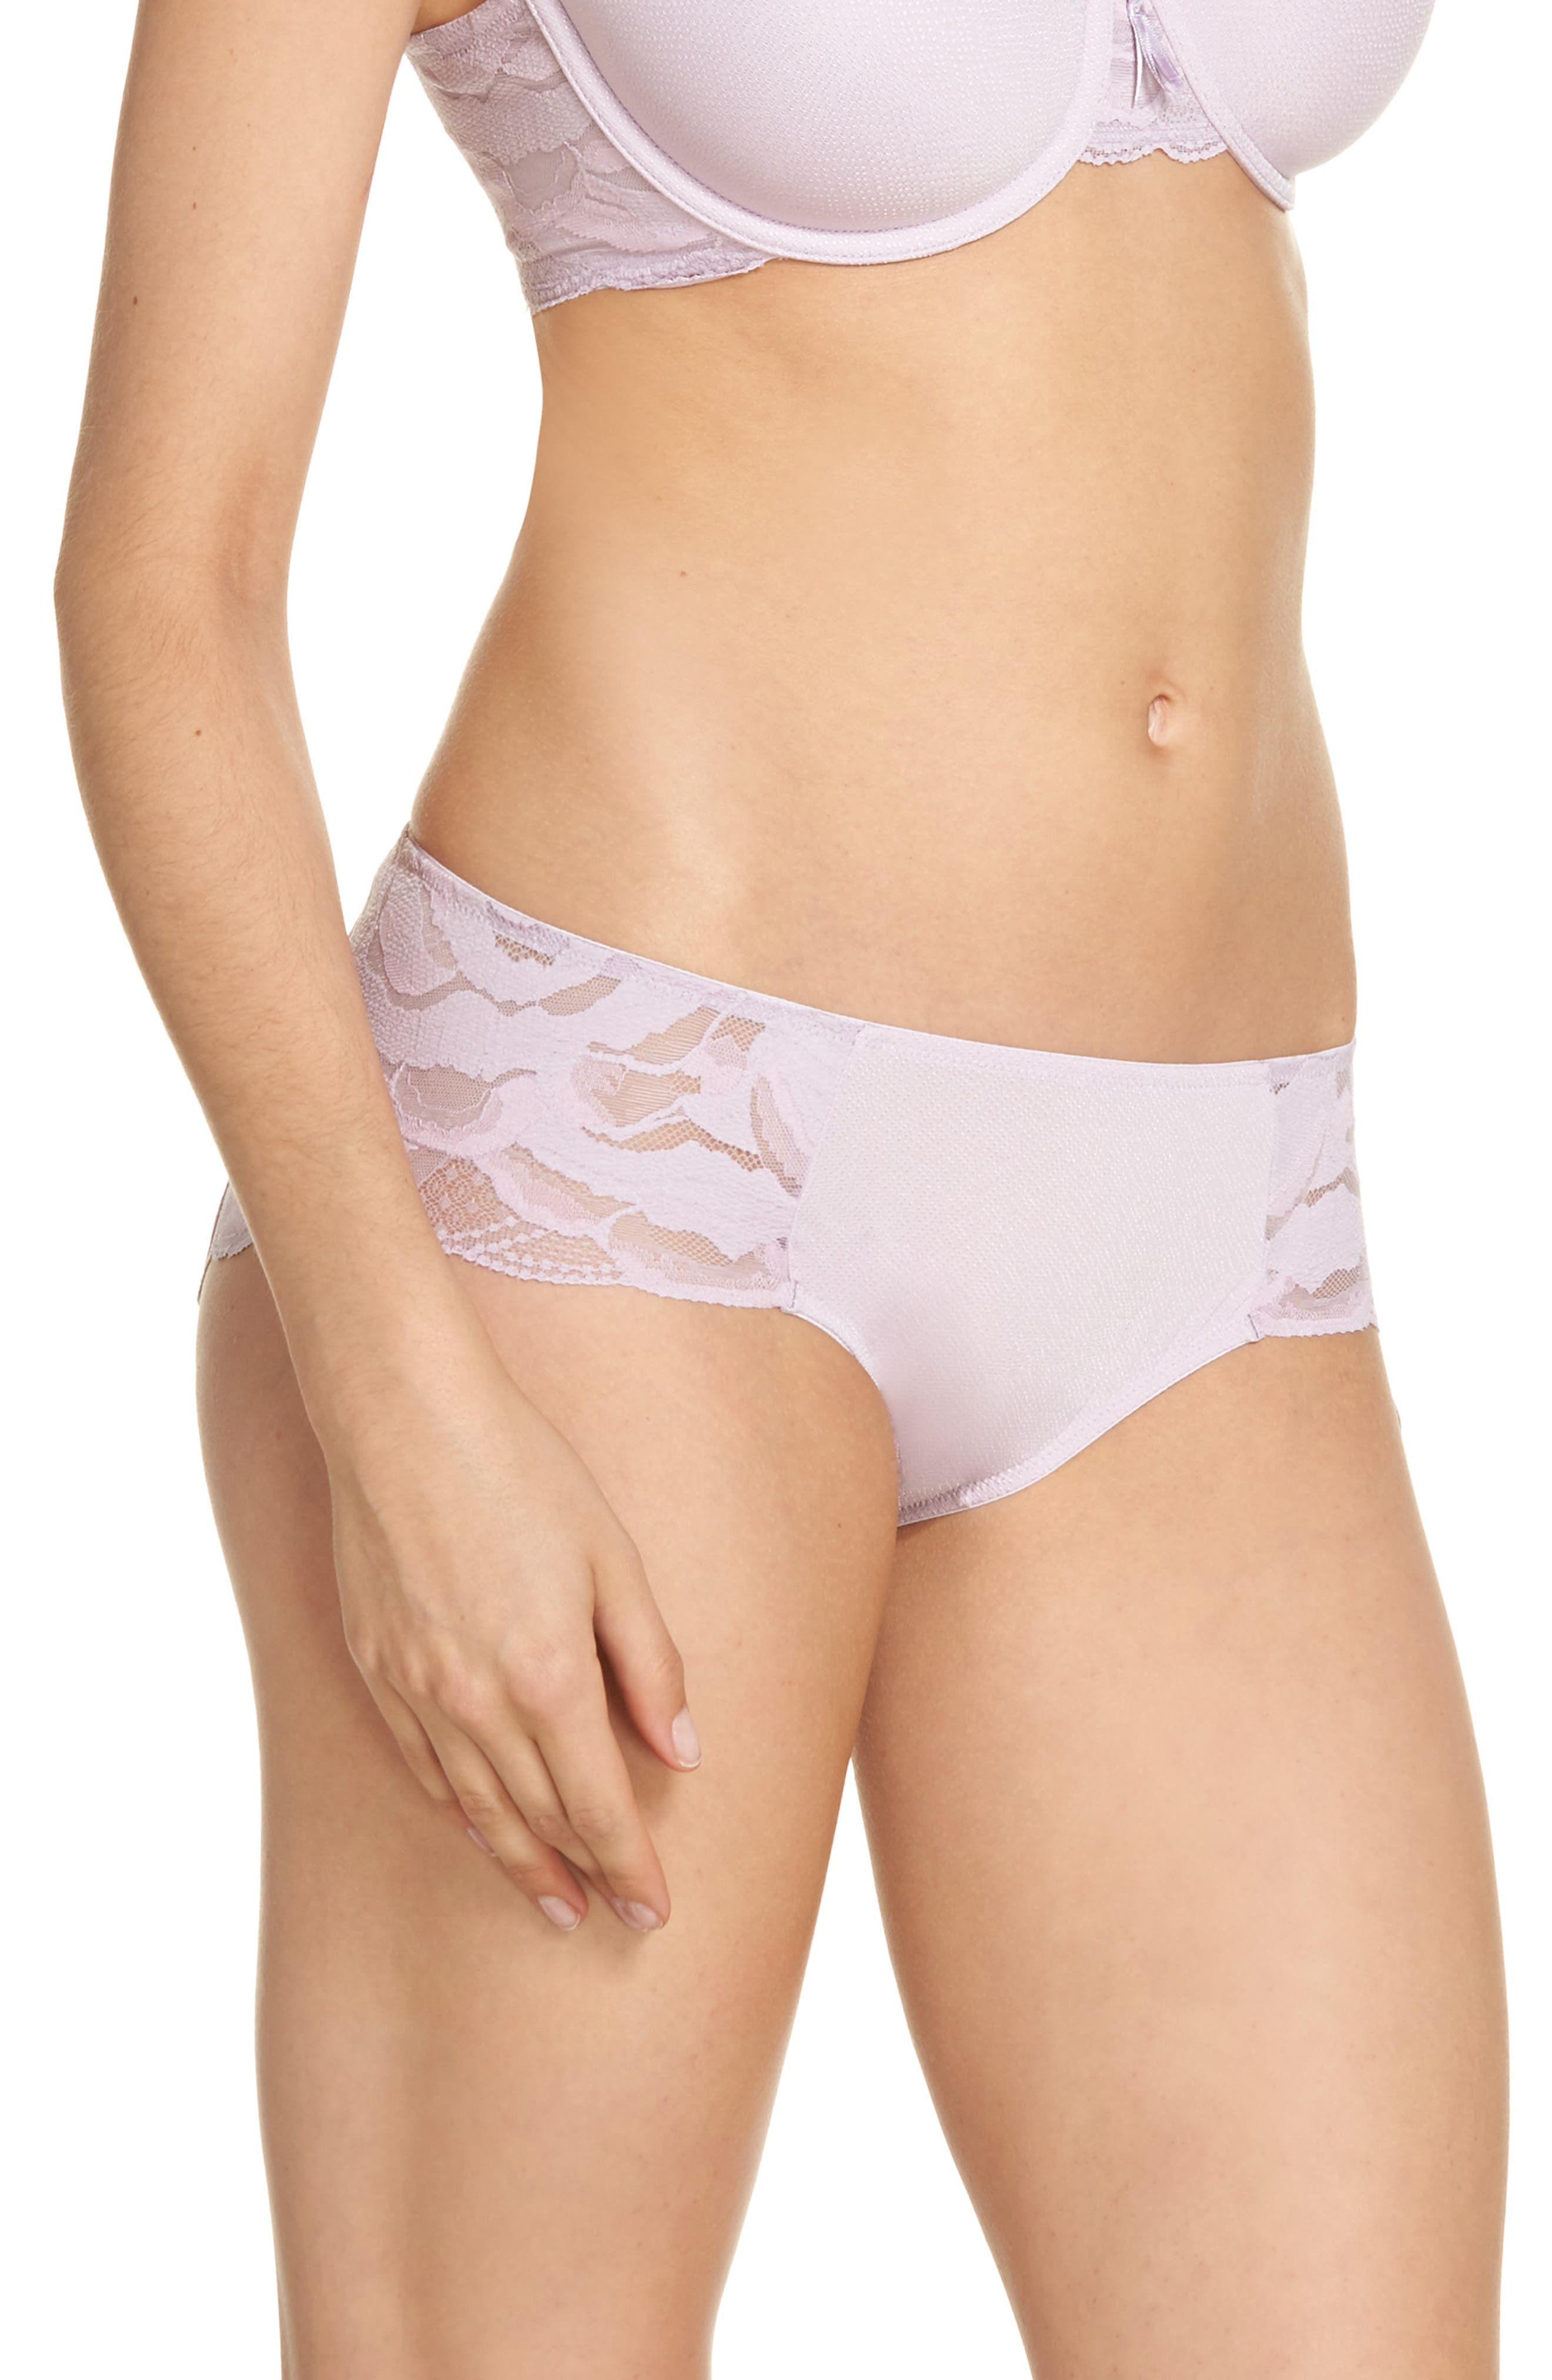 Hipster Top Tier Panties,                             Alternate thumbnail 3, color,                             Lavender Frost